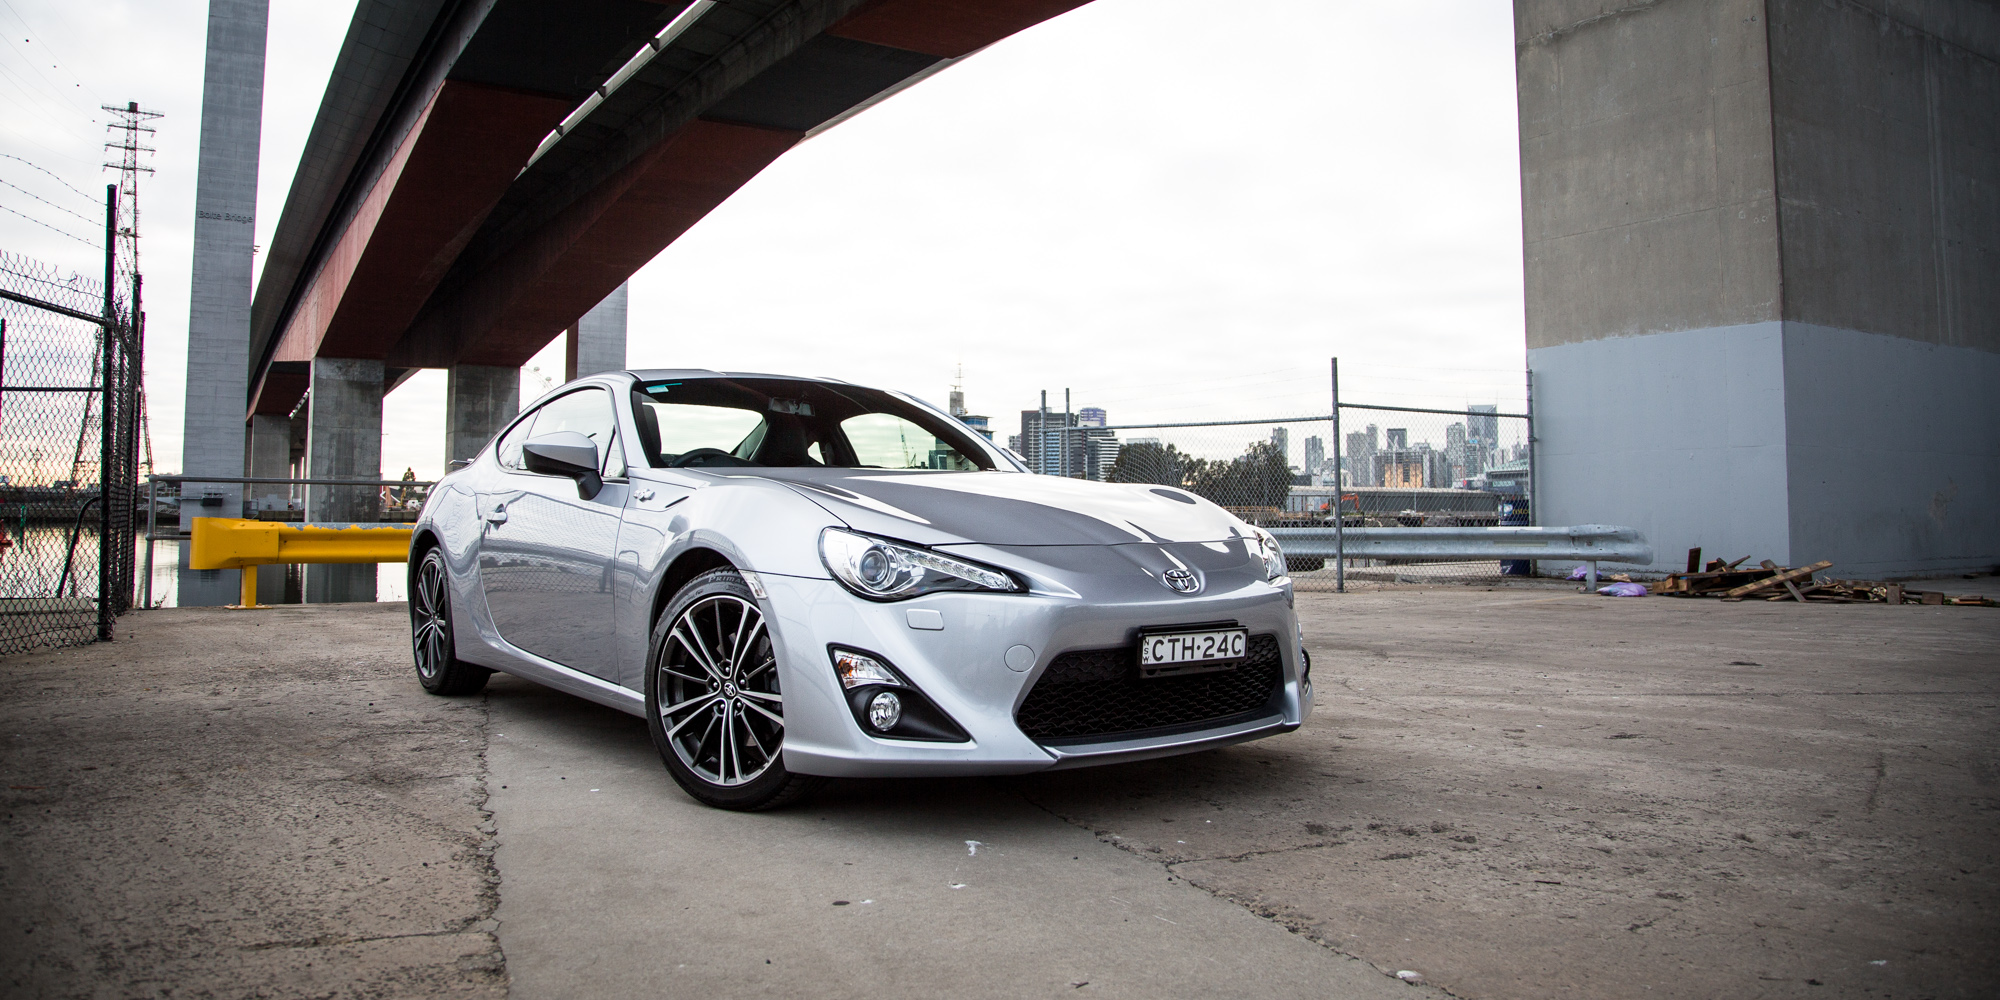 Excellent 2015 Toyota 86 Review  CarAdvice